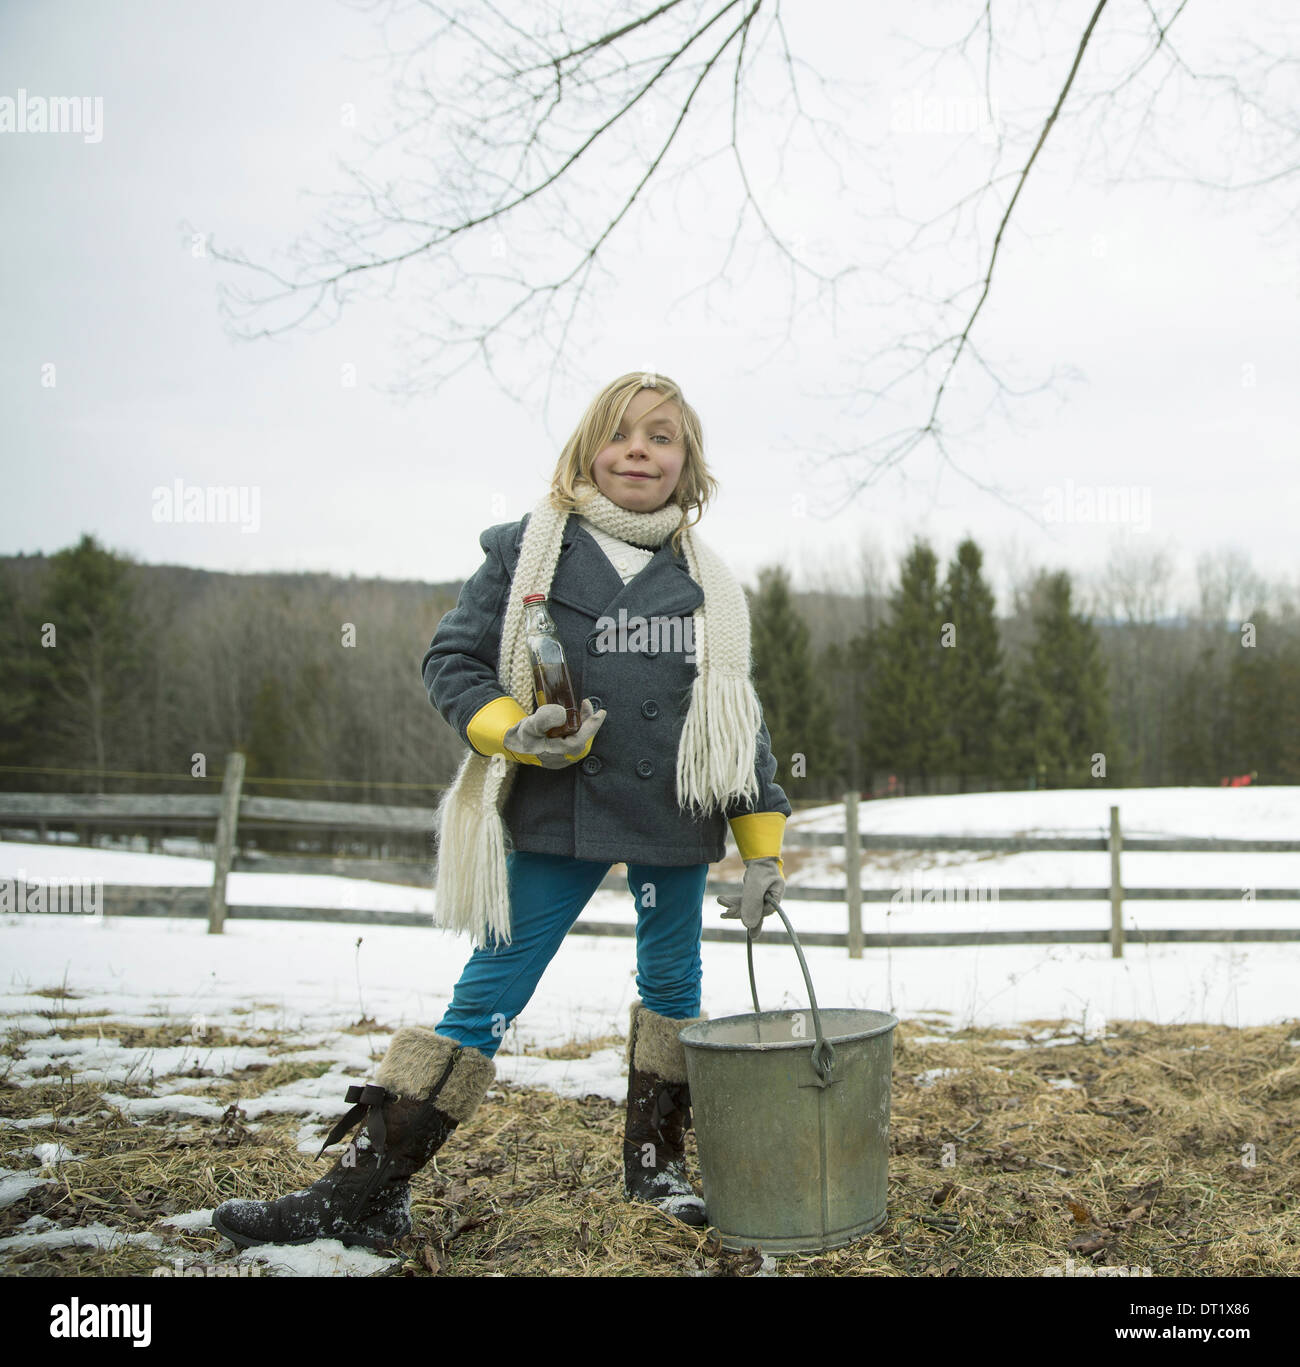 A girl in the snow carrying a metal bucket - Stock Image